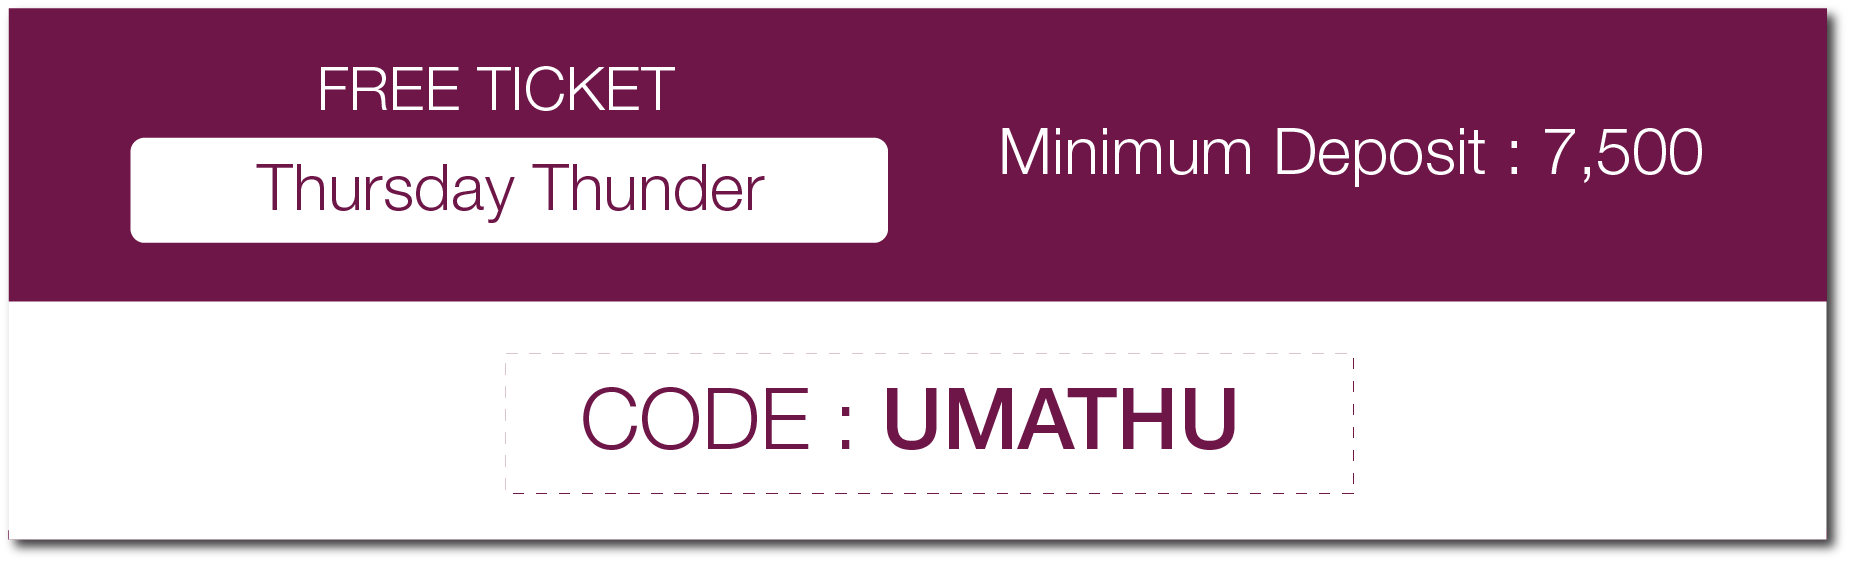 UMATHU (Thursday Thunder).png